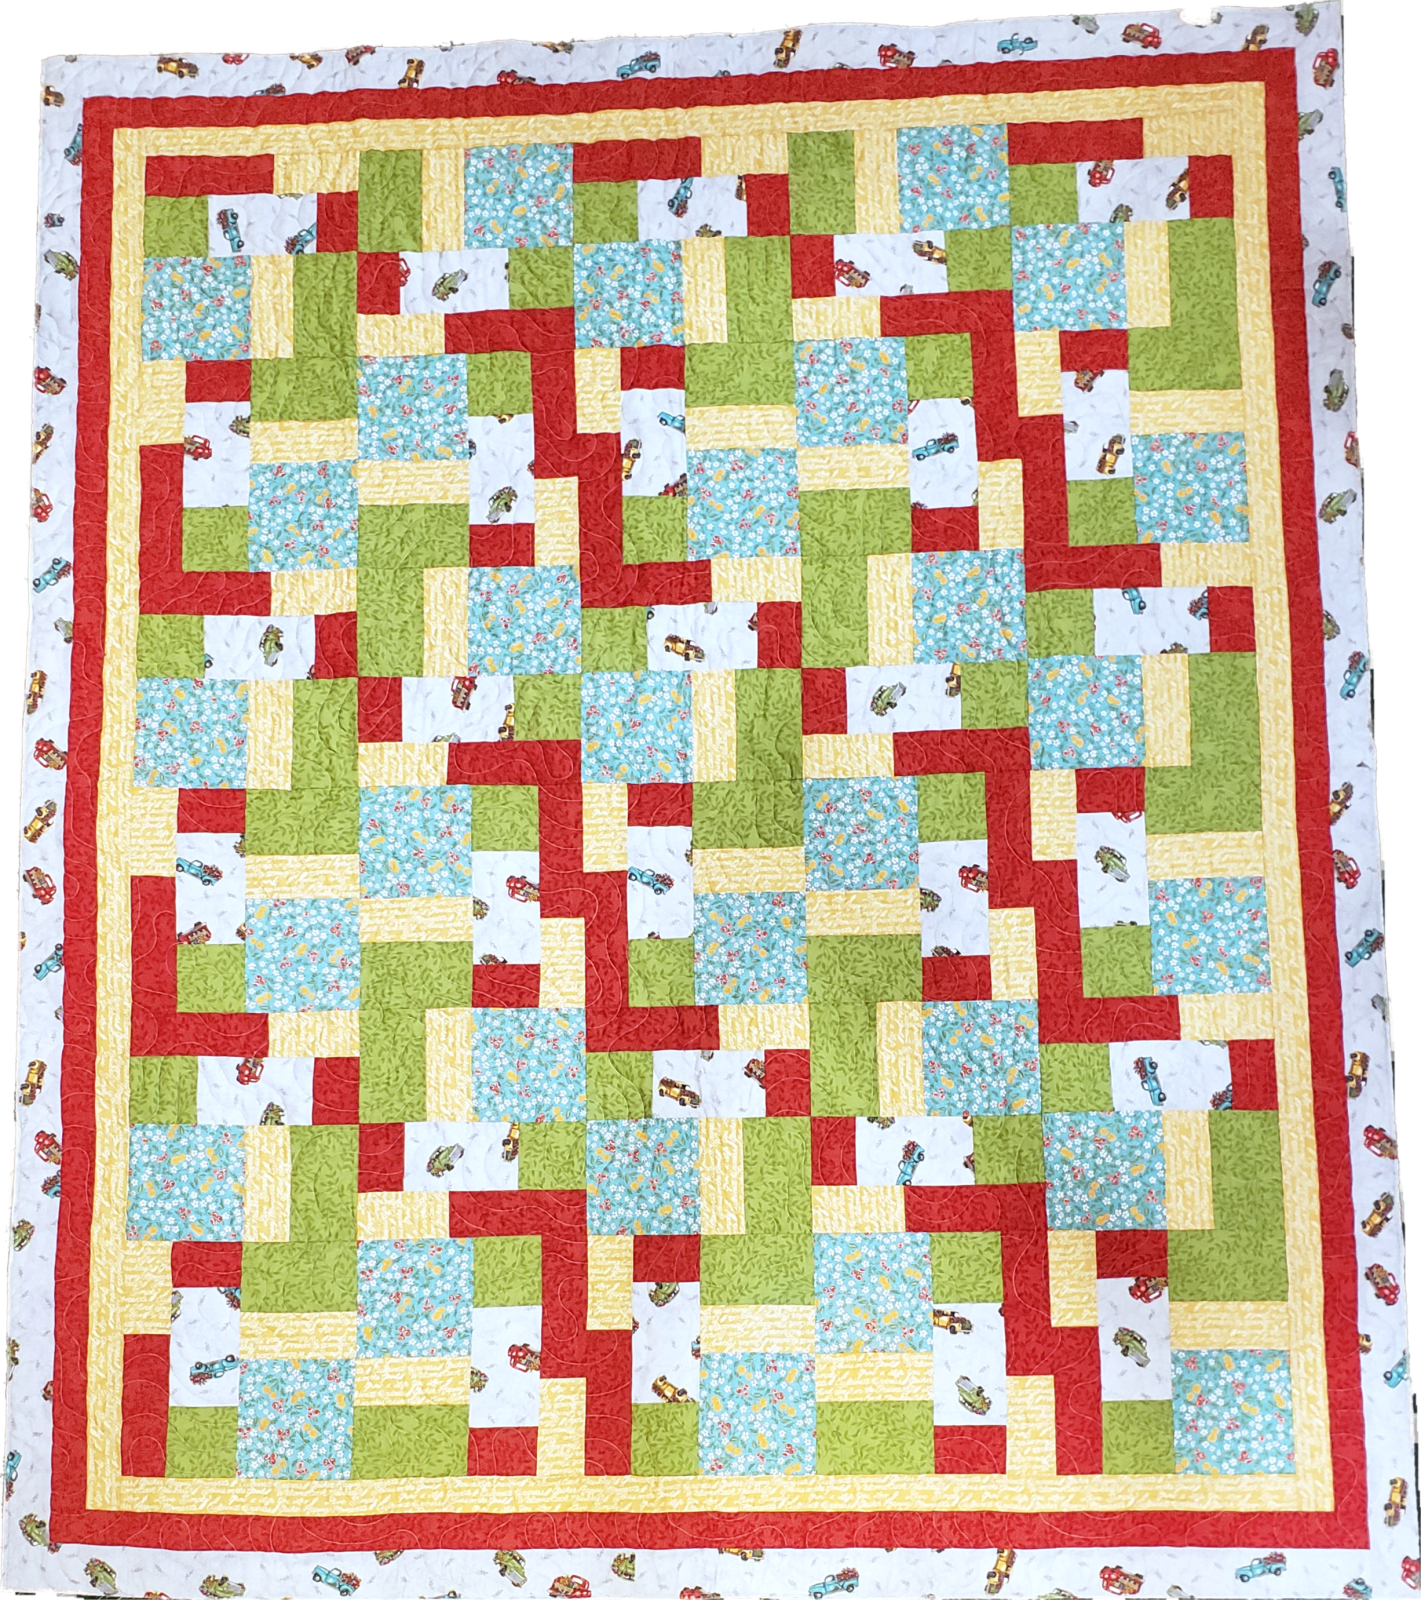 5 Yard Quilt Kit - Cultivate Kindness - No Matter